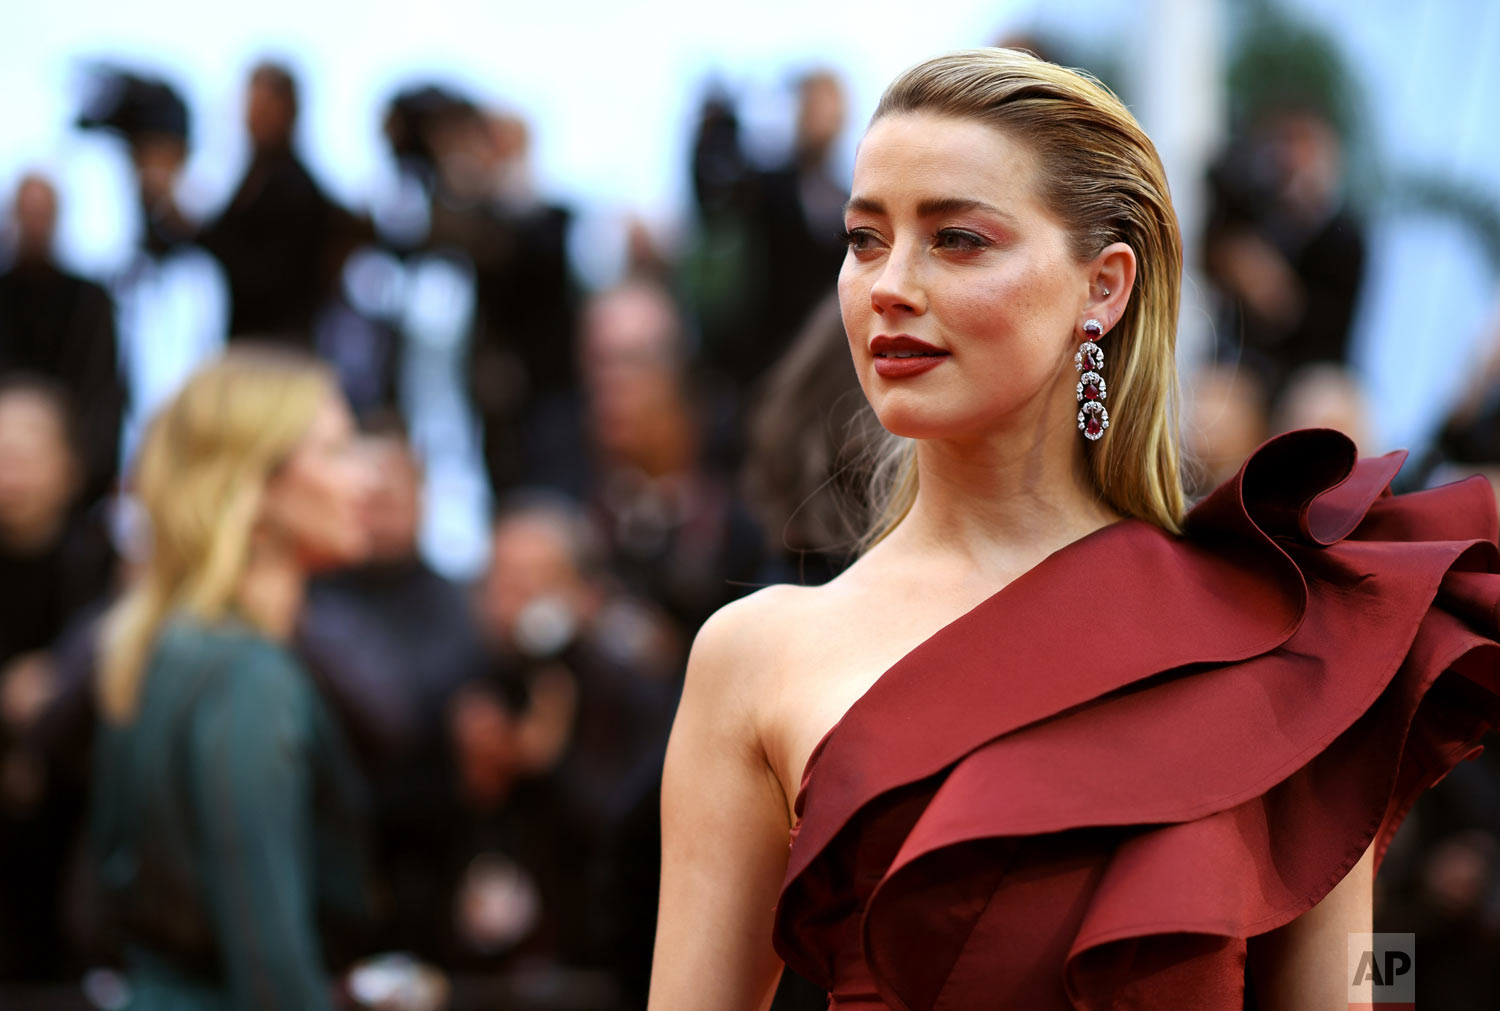 Actress Amber Heard poses at the 72nd international film festival, Cannes, France, May 17, 2019. (Photo by Arthur Mola/Invision/AP)